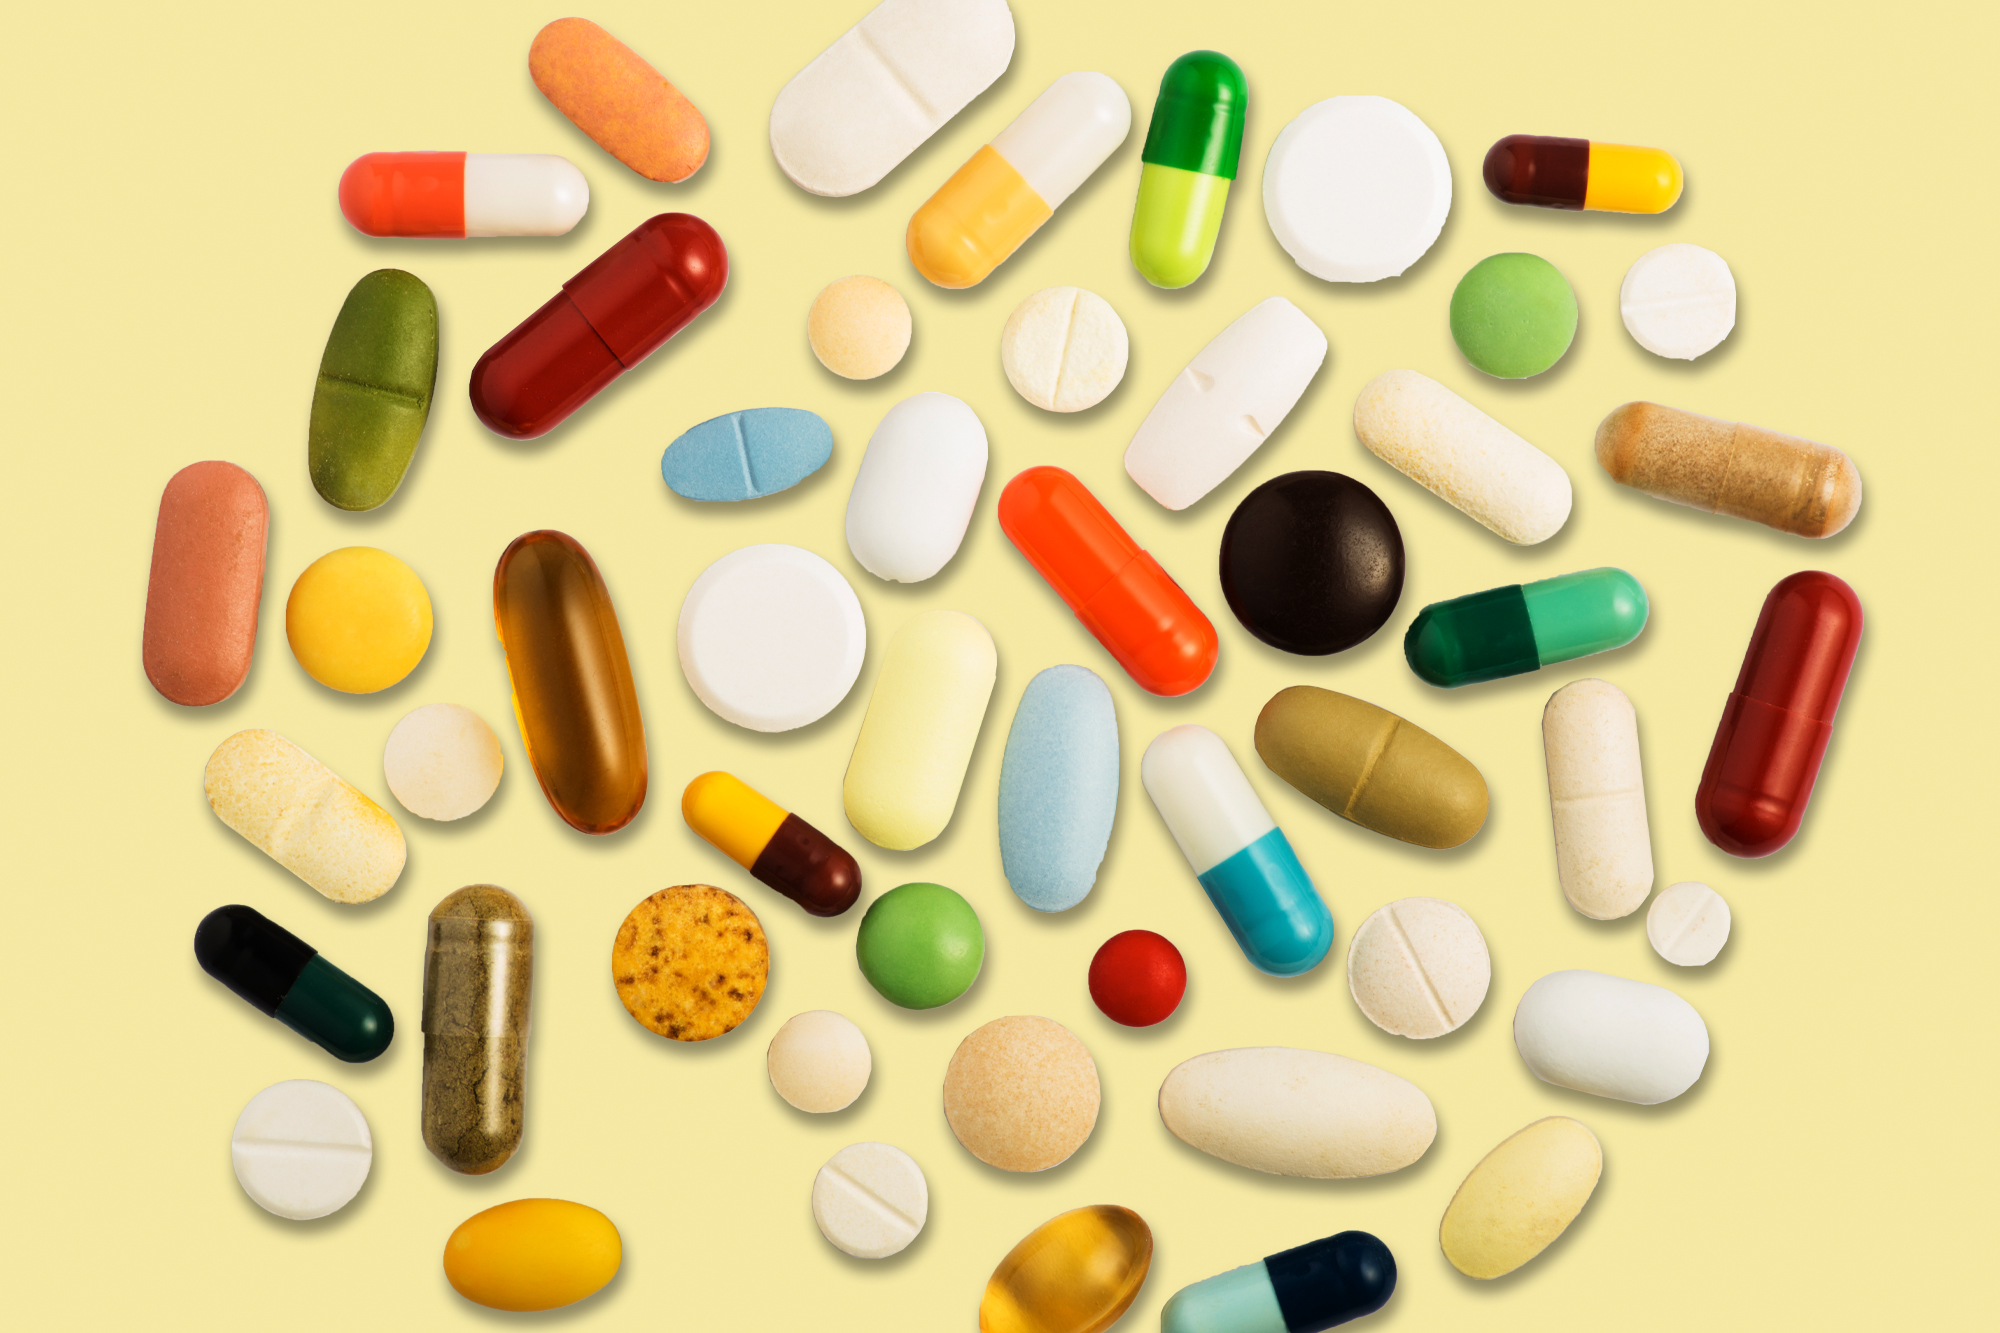 Supplement pills on pale yellow background